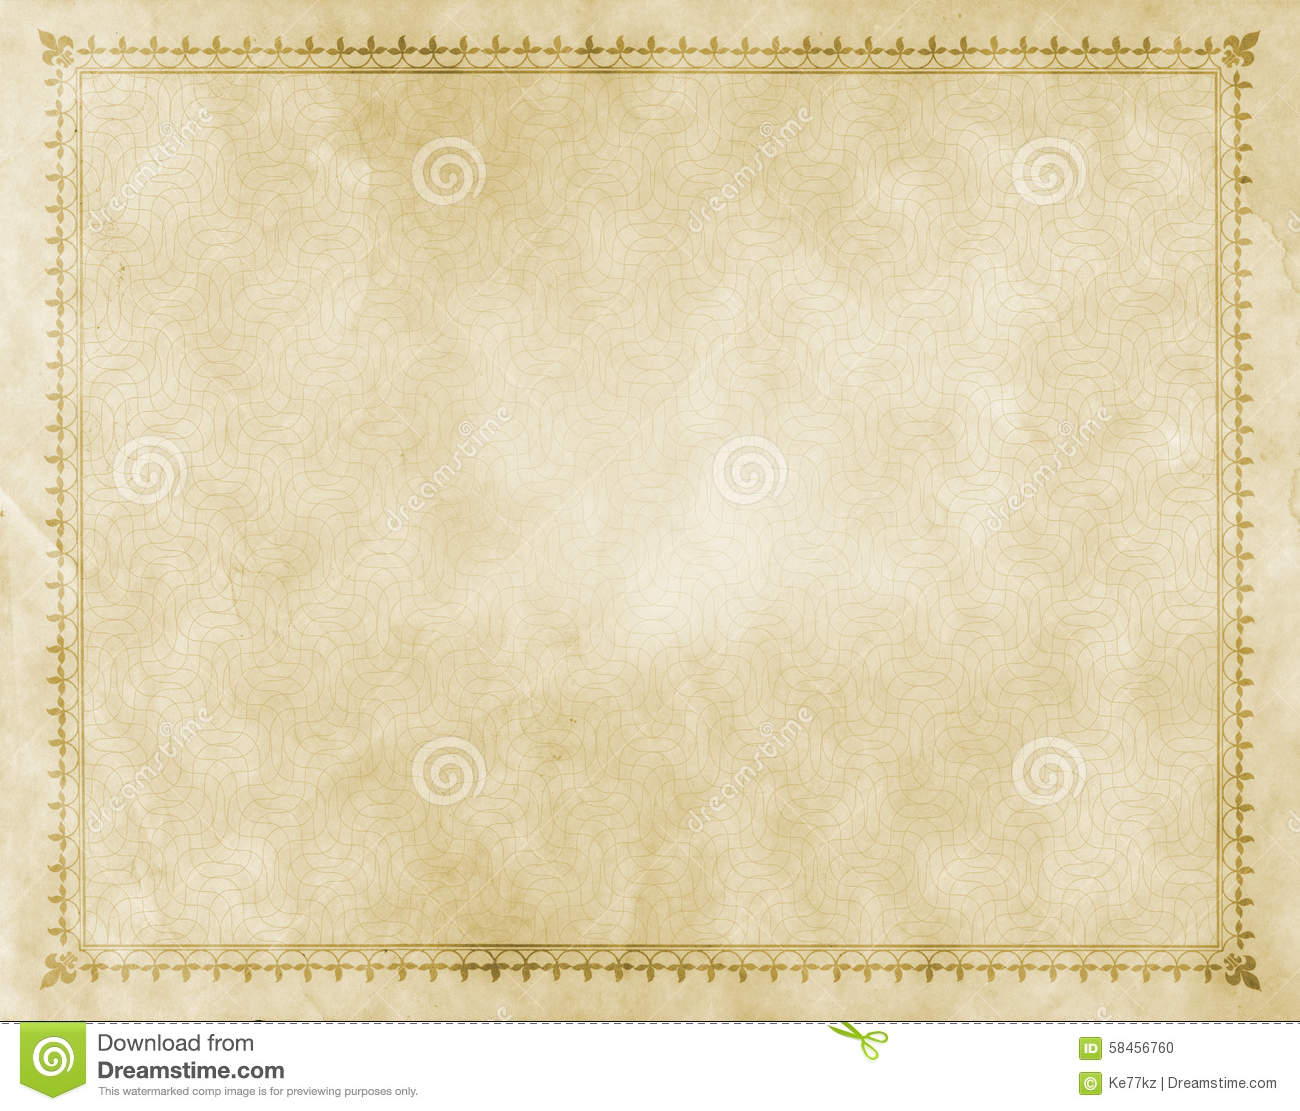 old paper with decorative vintage border. stock photo - image of